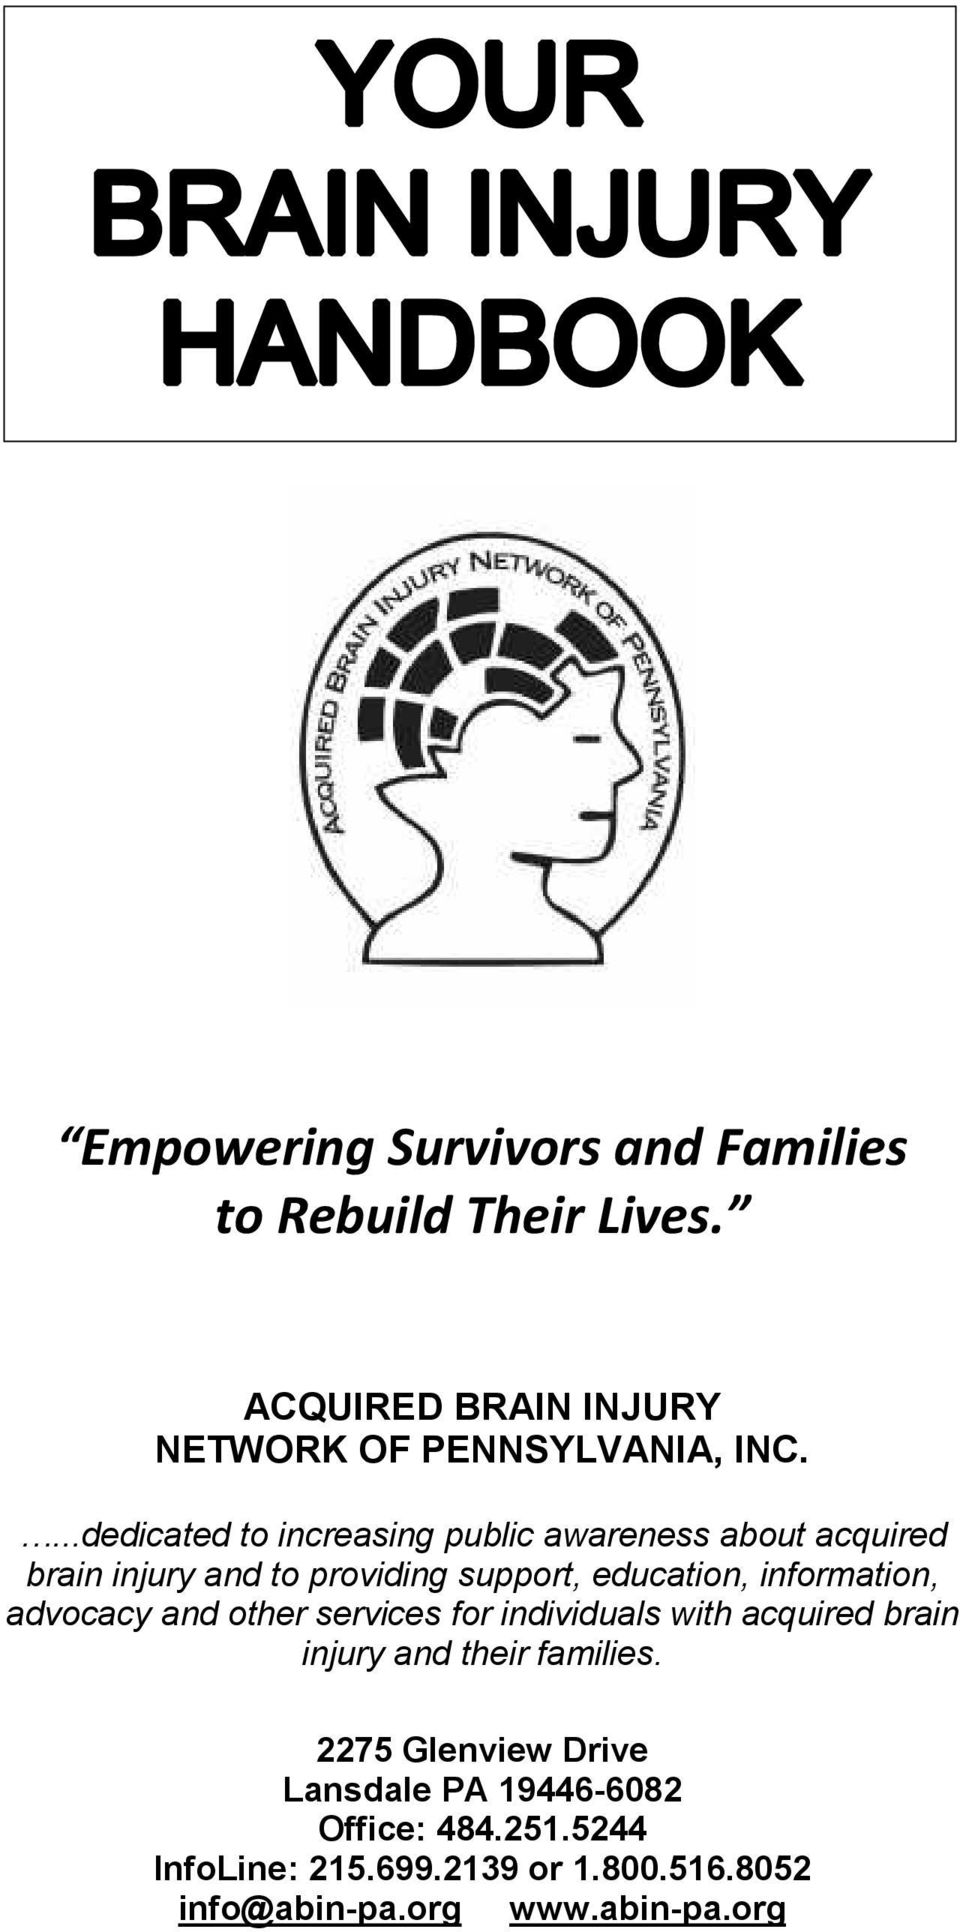 information, advocacy and other services for individuals with acquired brain injury and their families.